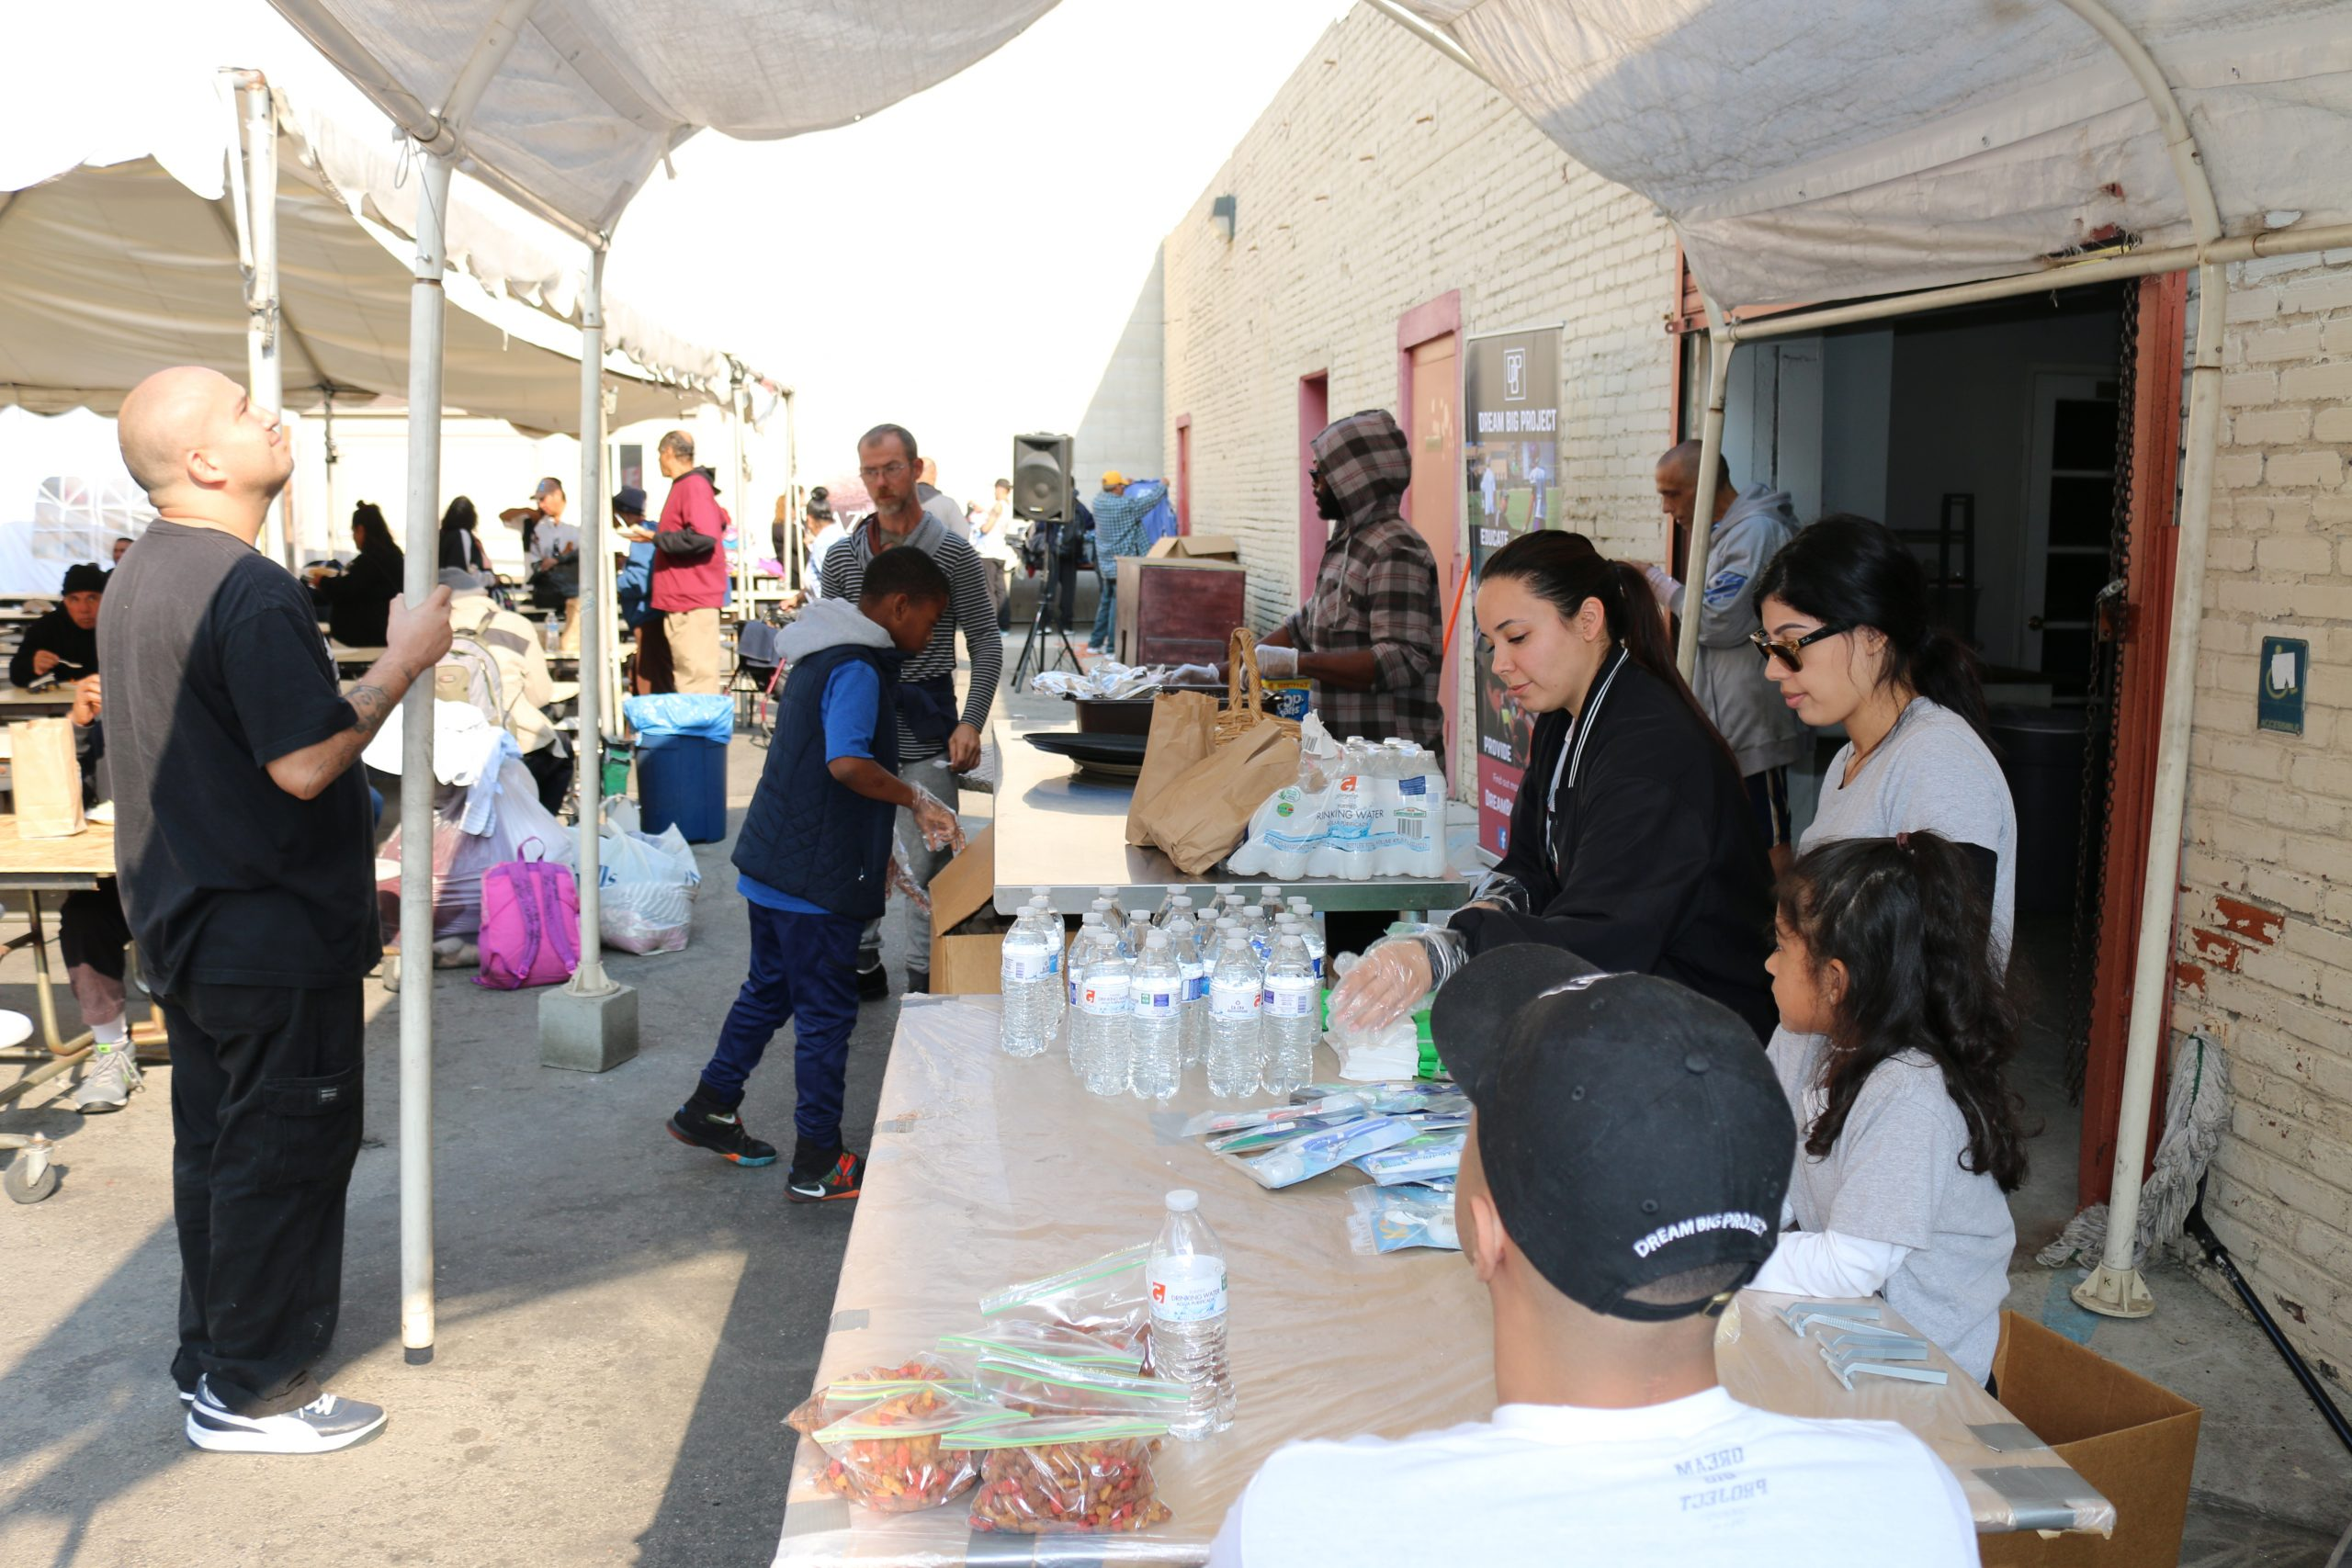 Dream Big Helps the Homeless at Skid Row's Mission and Church